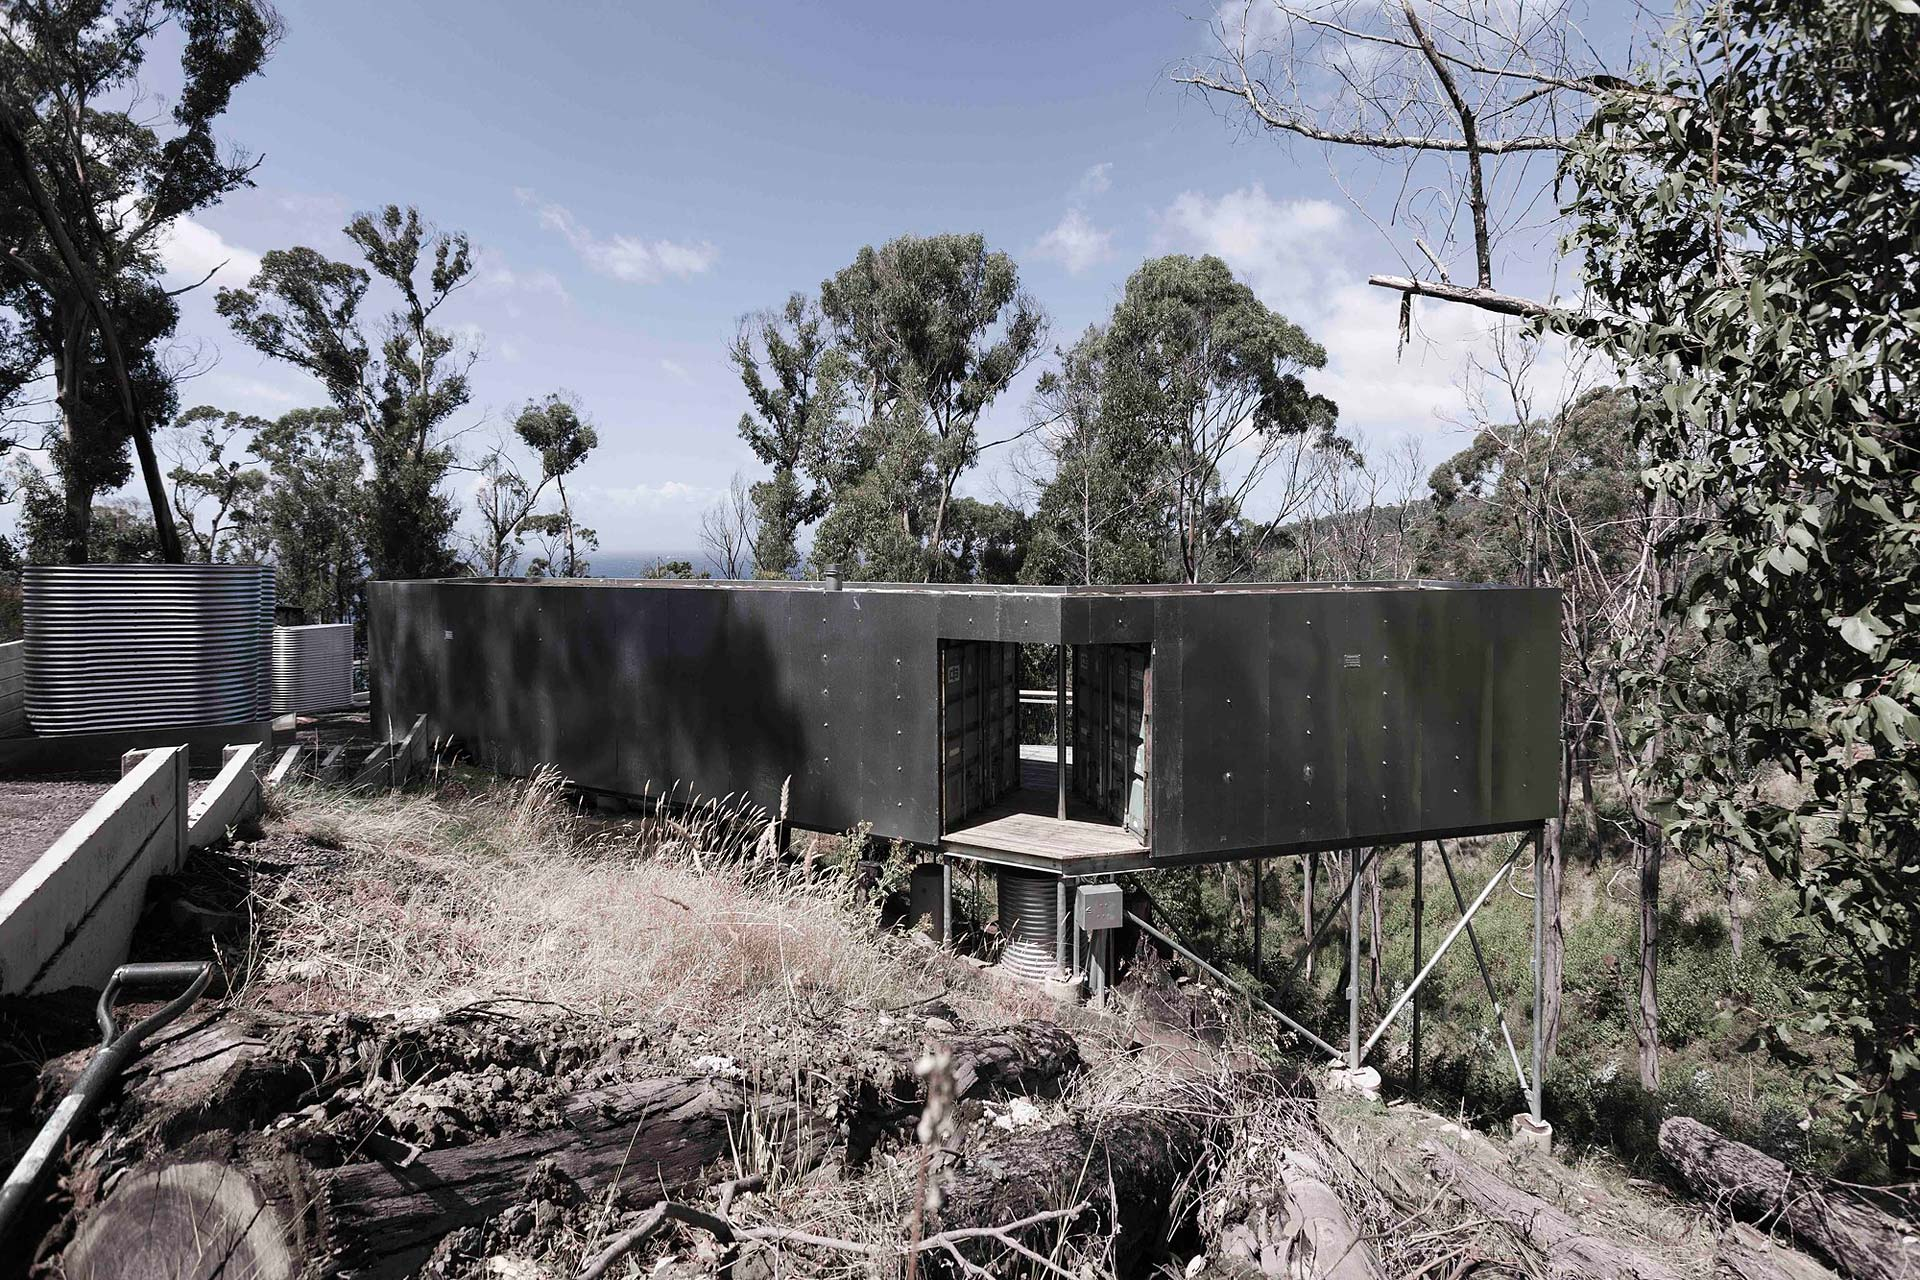 wye-river-container-house-1.jpg